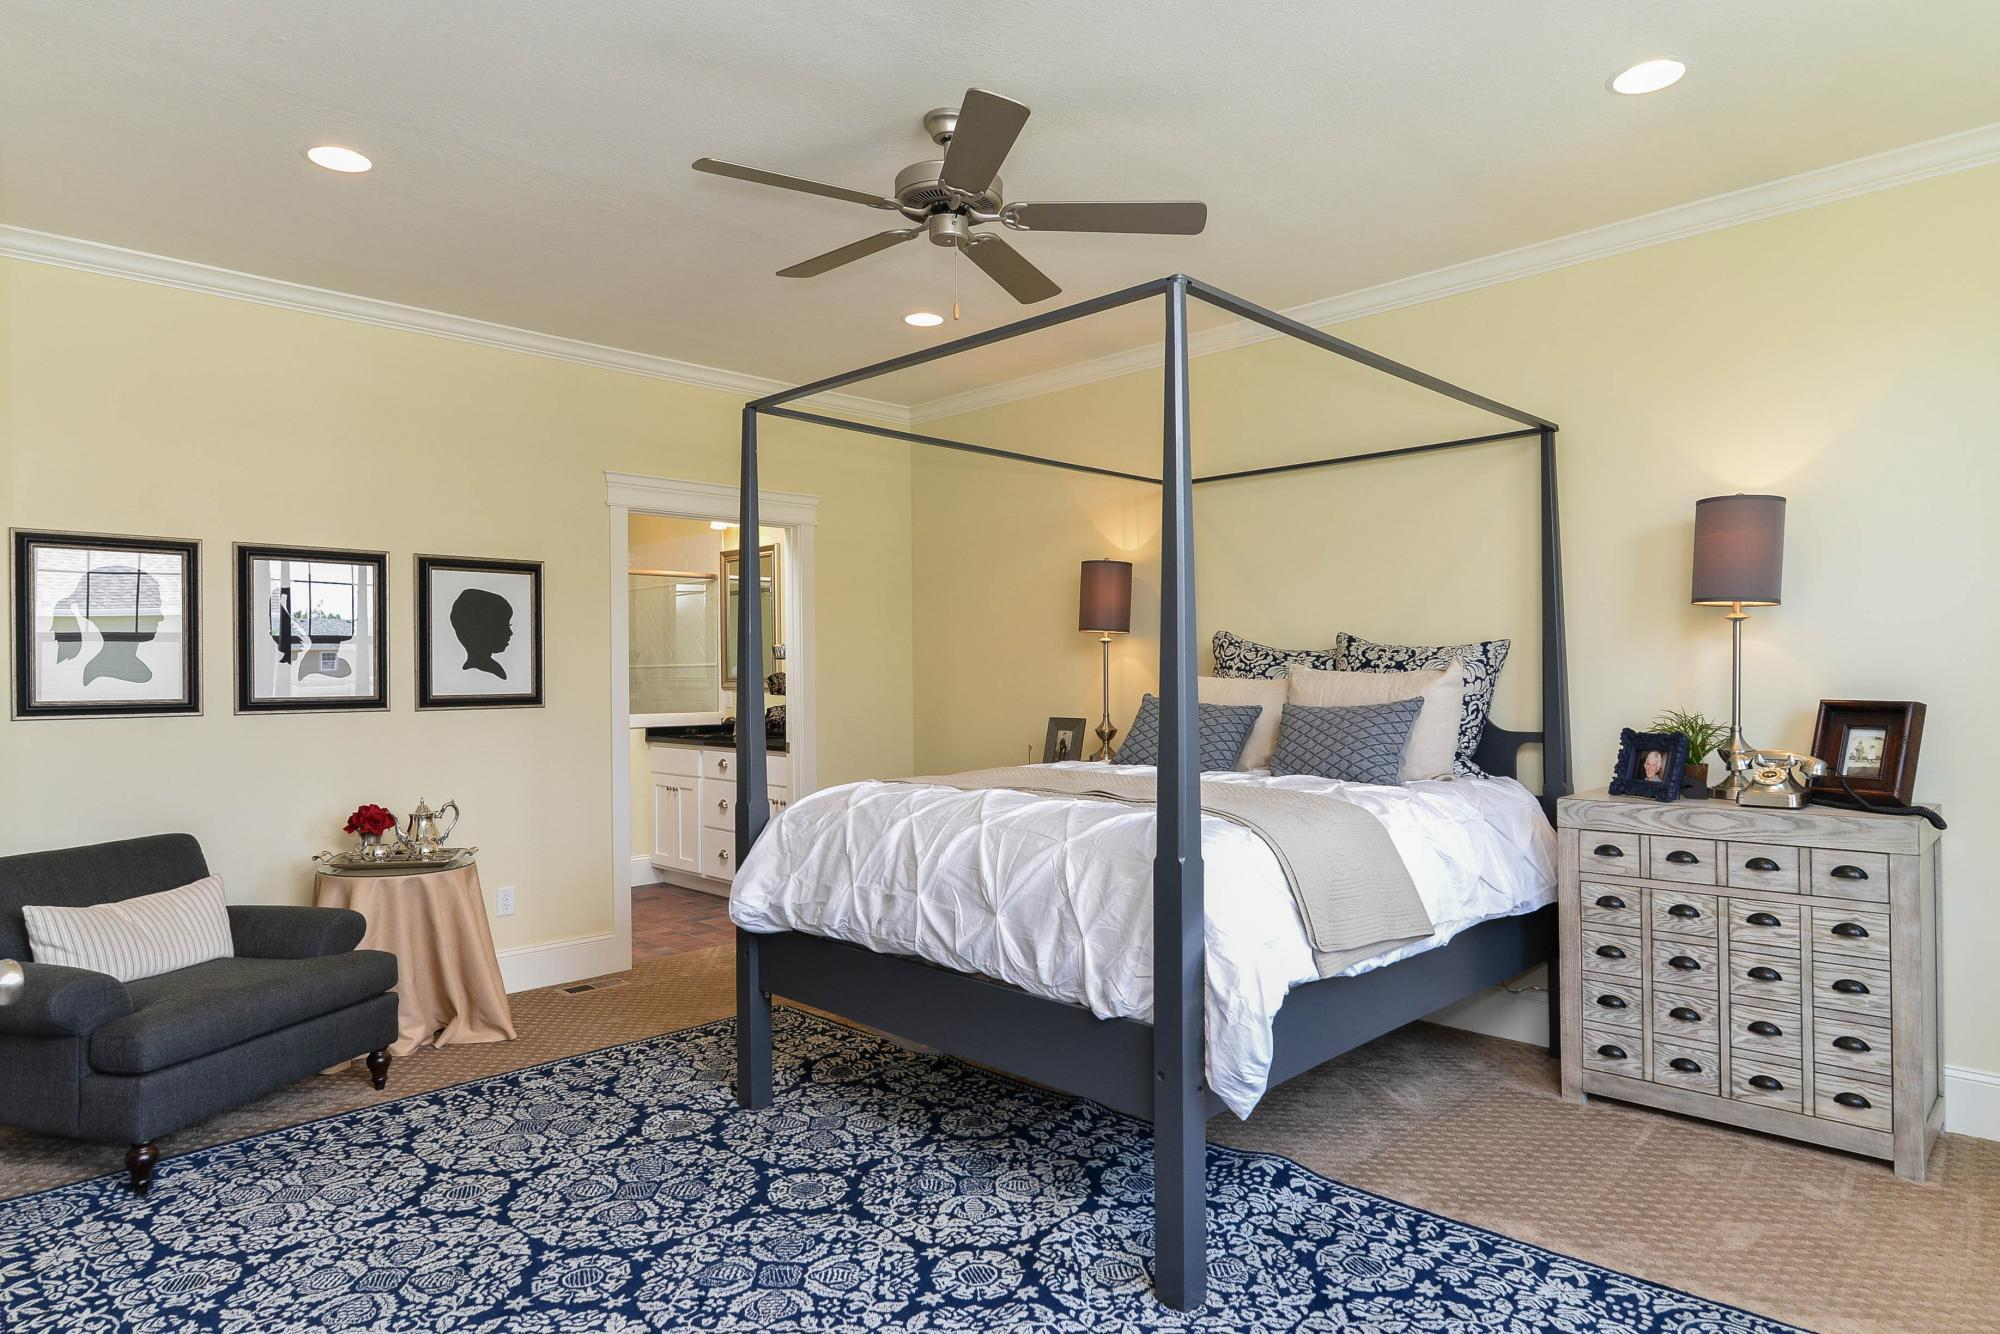 Bedroom featured in the Lakeville By Destination Homes in Salt Lake City-Ogden, UT